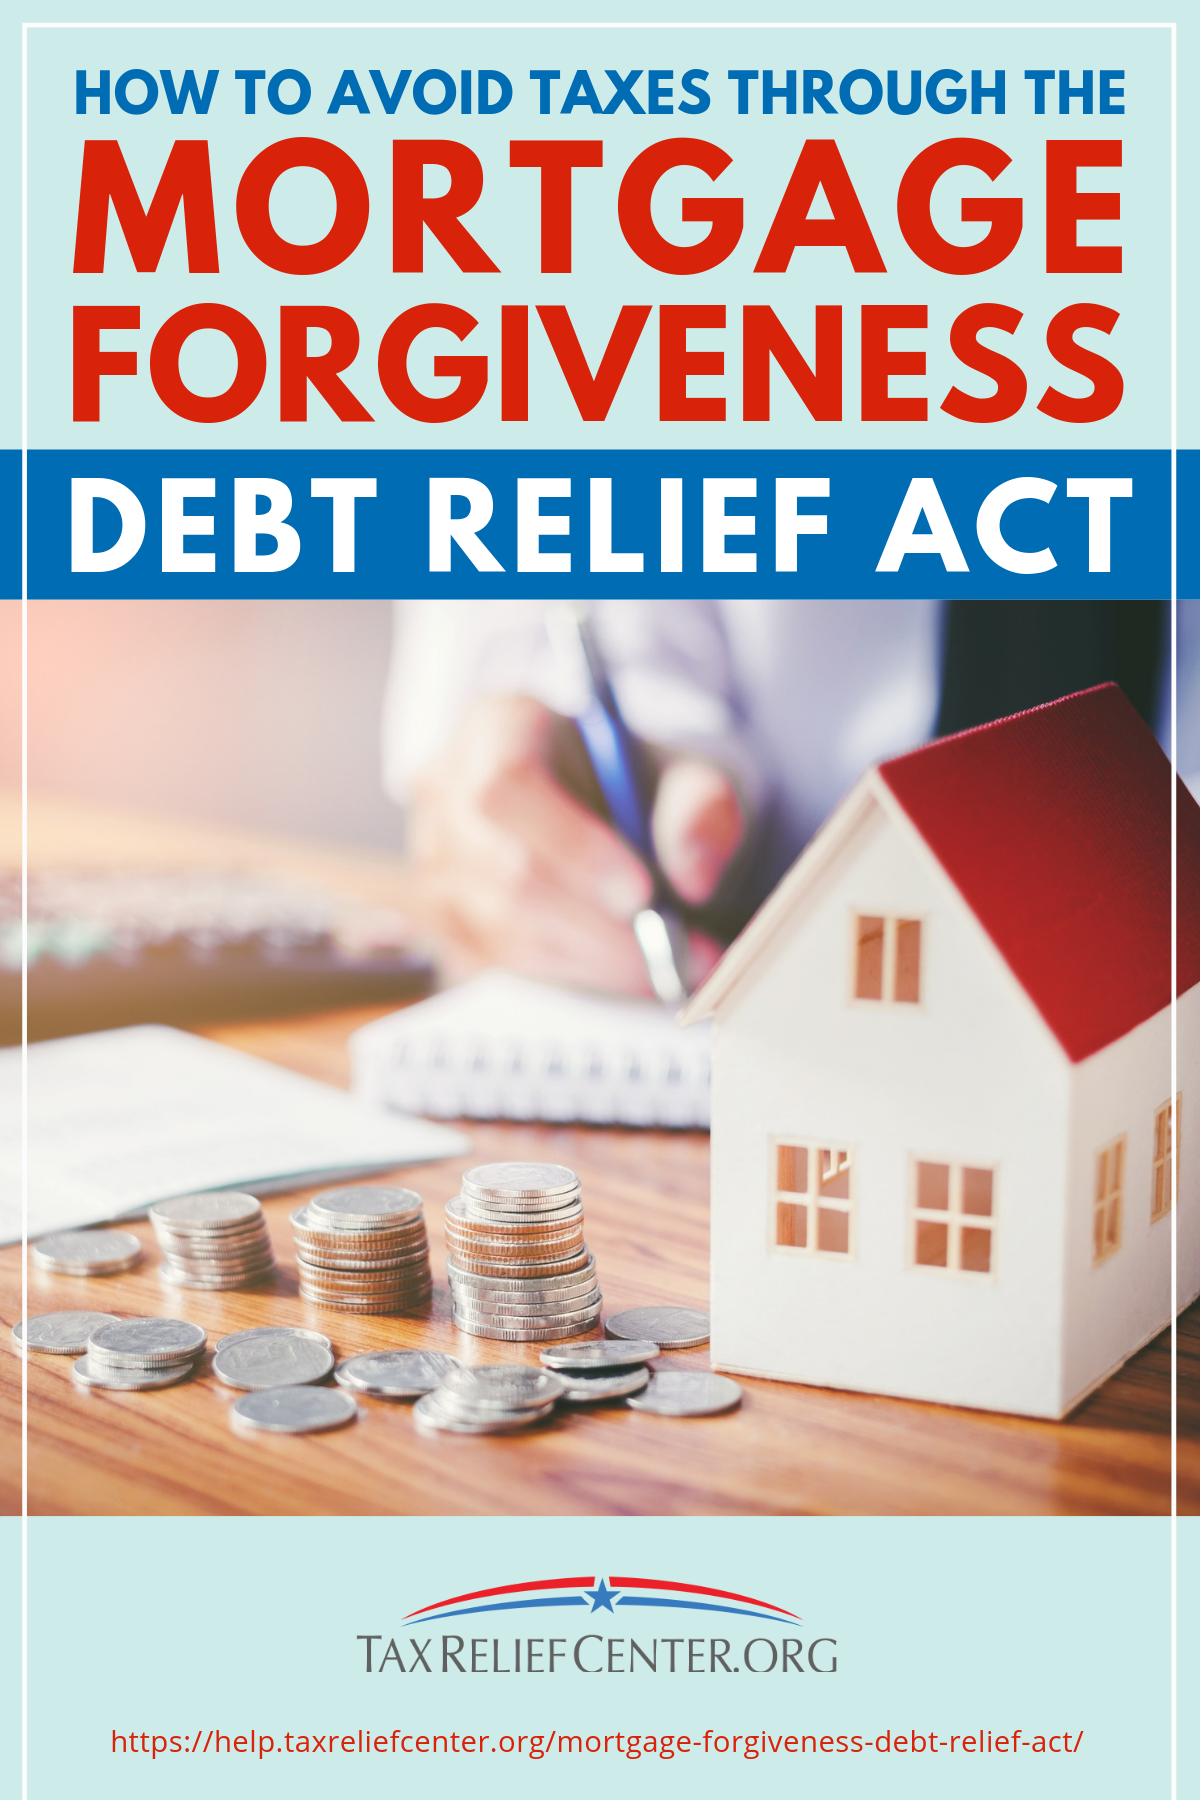 How To Avoid Taxes Through The Mortgage Forgiveness Debt Relief Act Debt Relief Credit Card Debt Relief Tax Debt